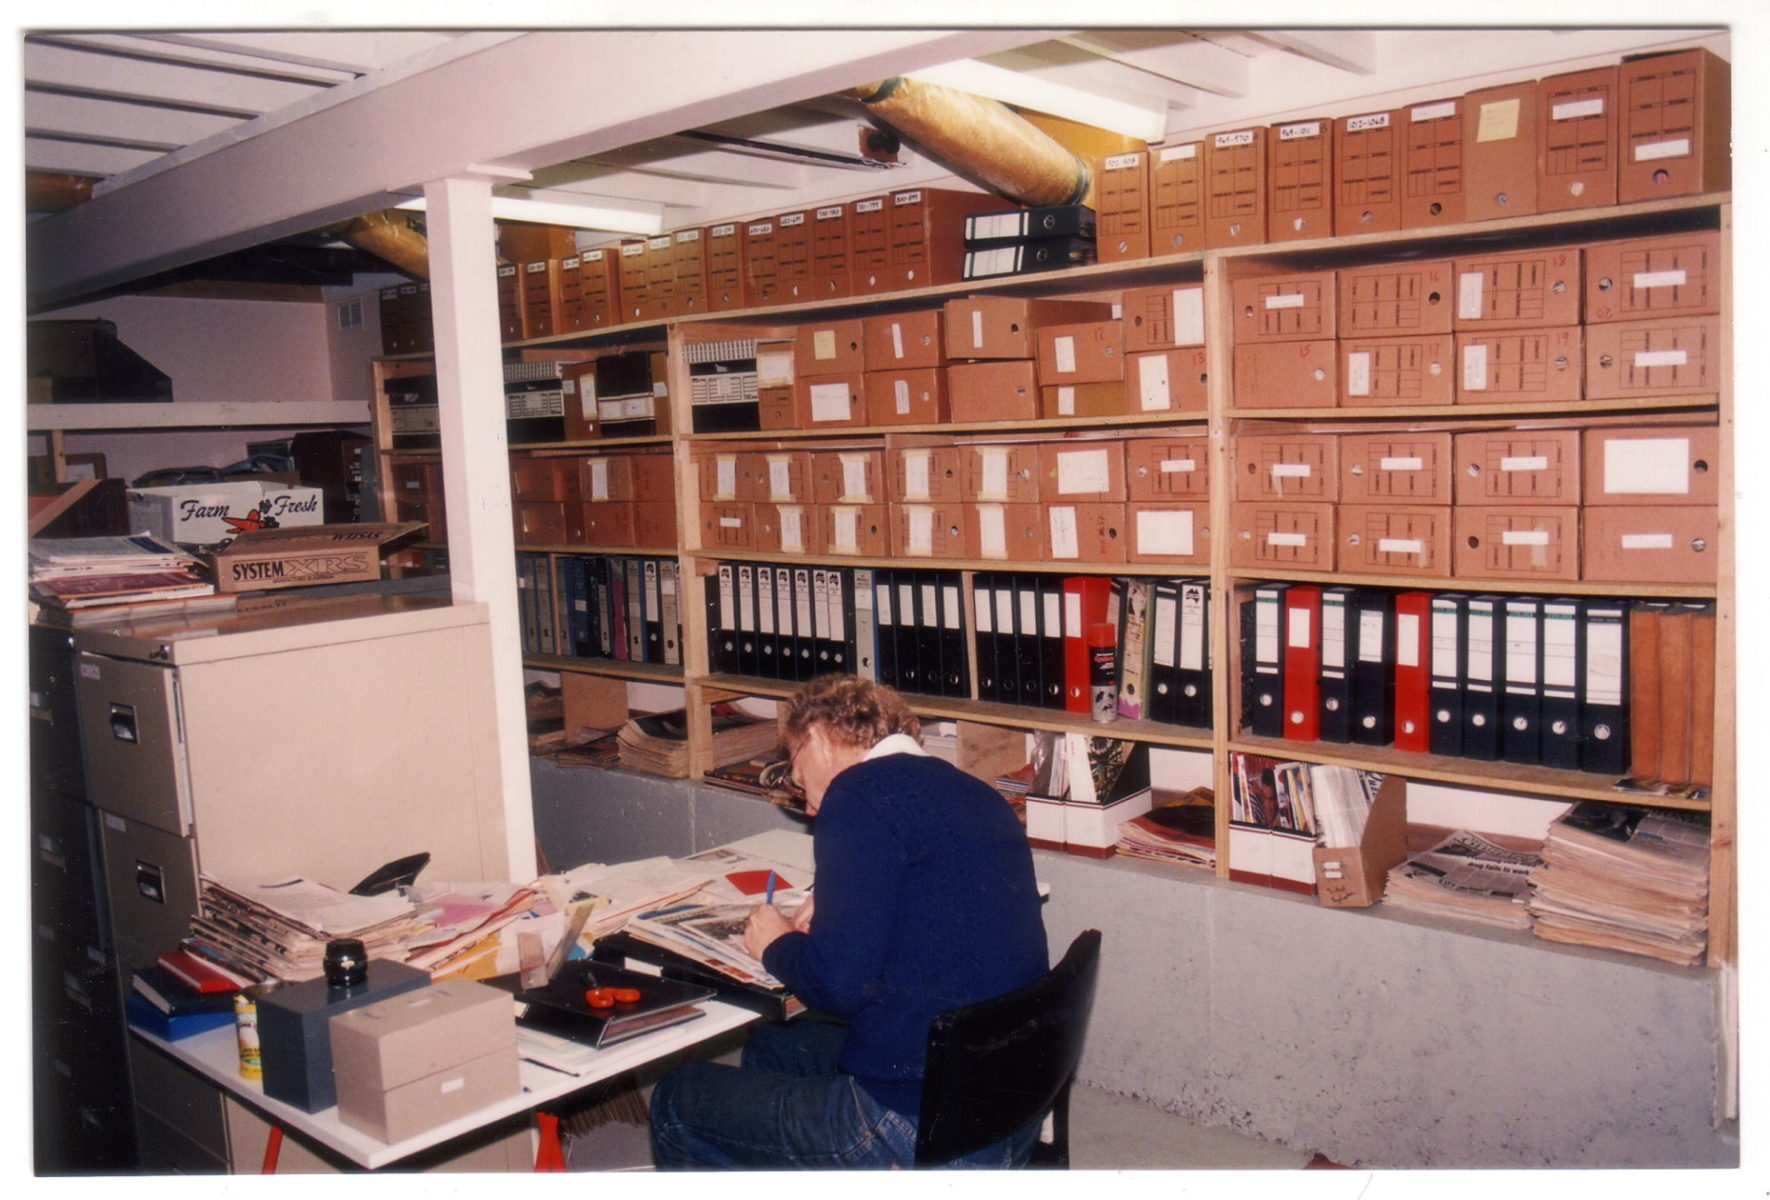 Graham Carbery at the Archives, Ivanhoe, 1991 (photo: unidentified photographer) Photographs Collection, 90-31d